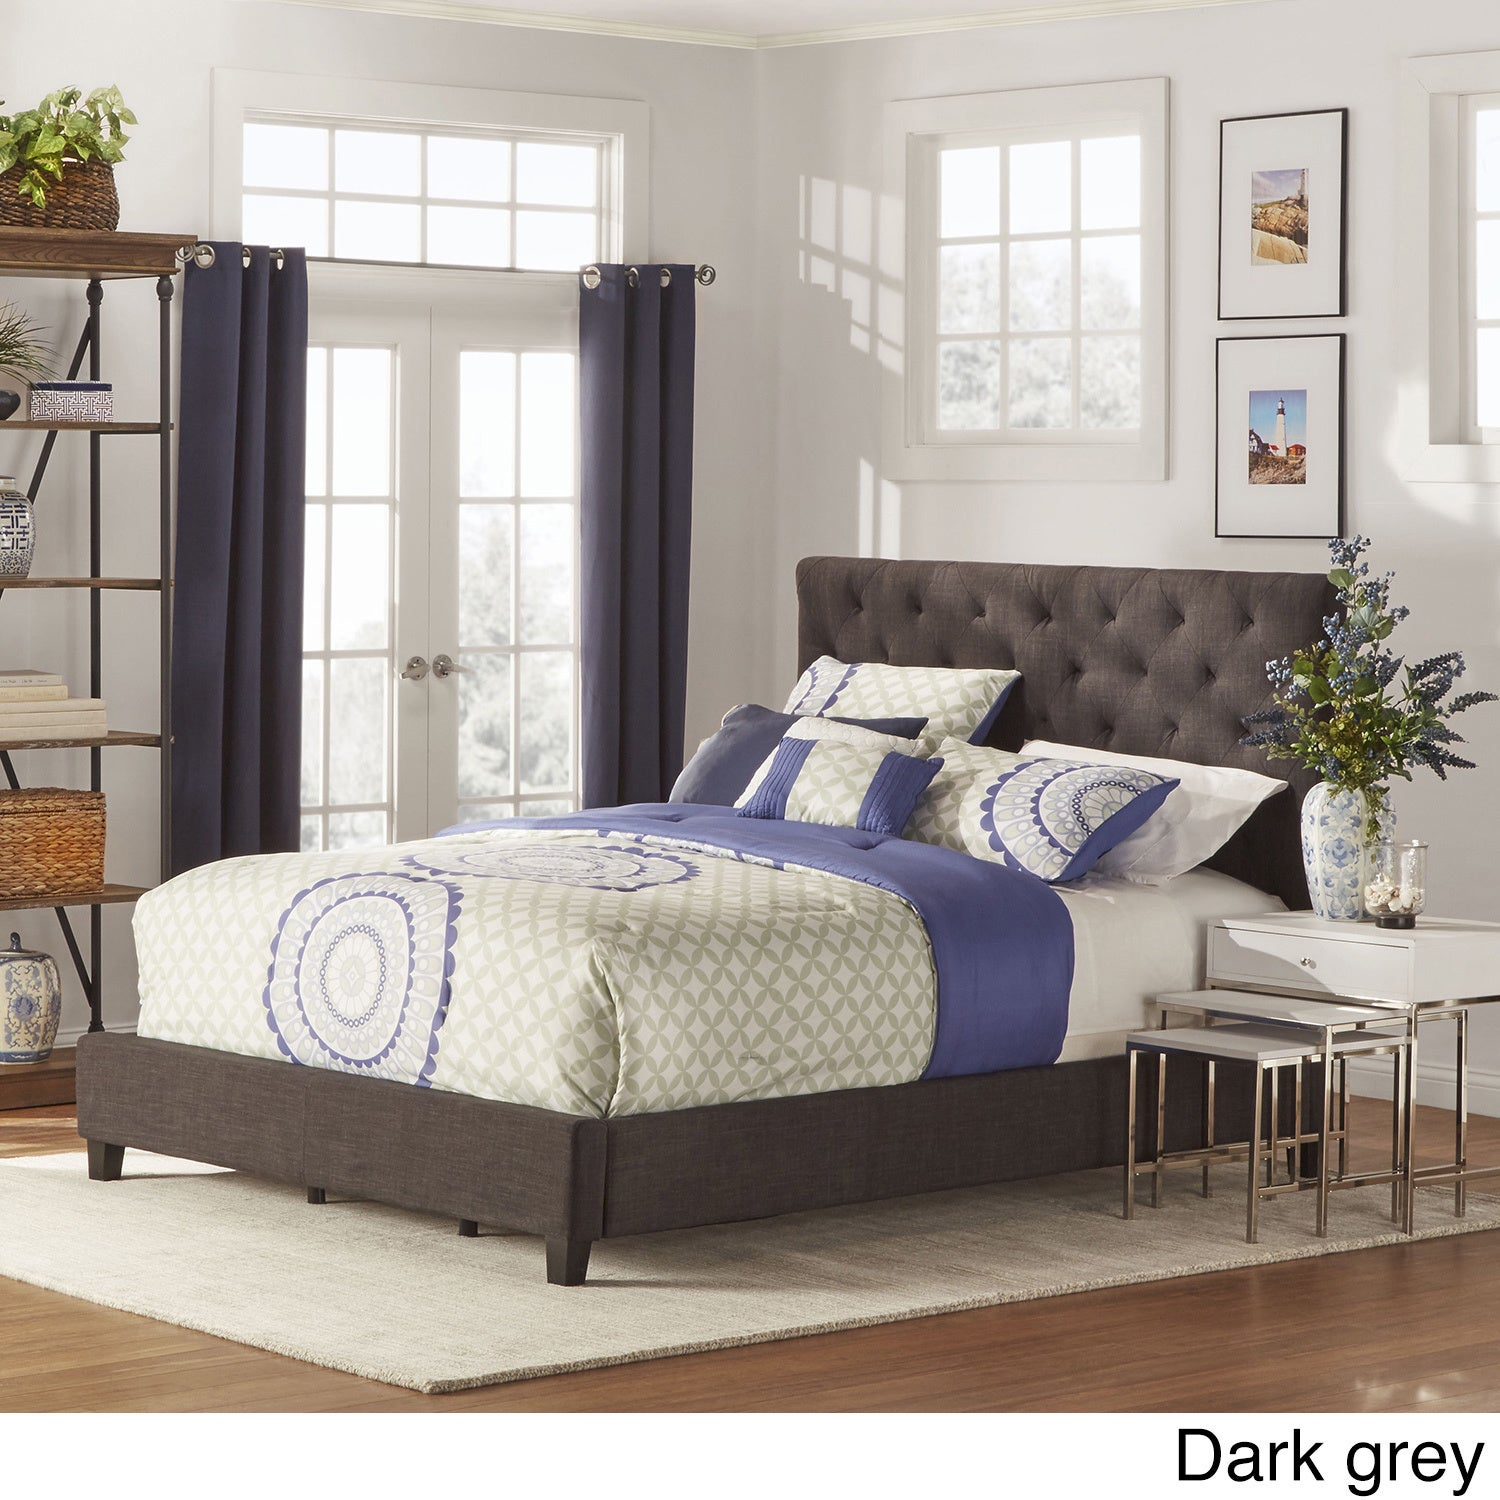 Sophie Tufted Full-size Upholstered Platform Bed by iNSPIRE Q Classic -  Free Shipping Today - Overstock.com - 15396523